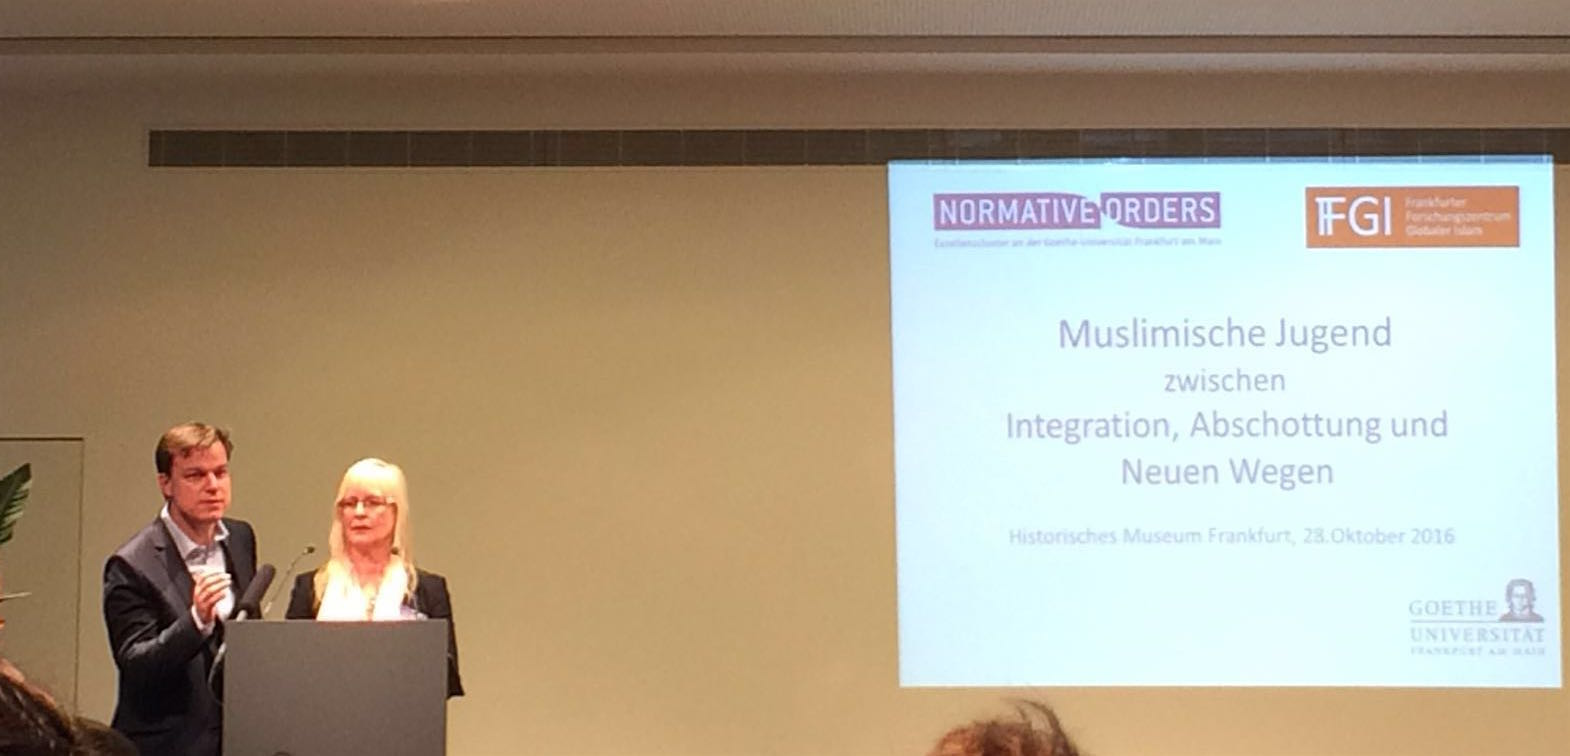 "The conference was organised by Frankfurt Research Centre for Global Islam at the Excellence Cluster ""Normative Orders"" at Goethe University under the auspices of the Hessian Ministry of Social Affairs and Integration in the Historical Museum in Frankfurt."